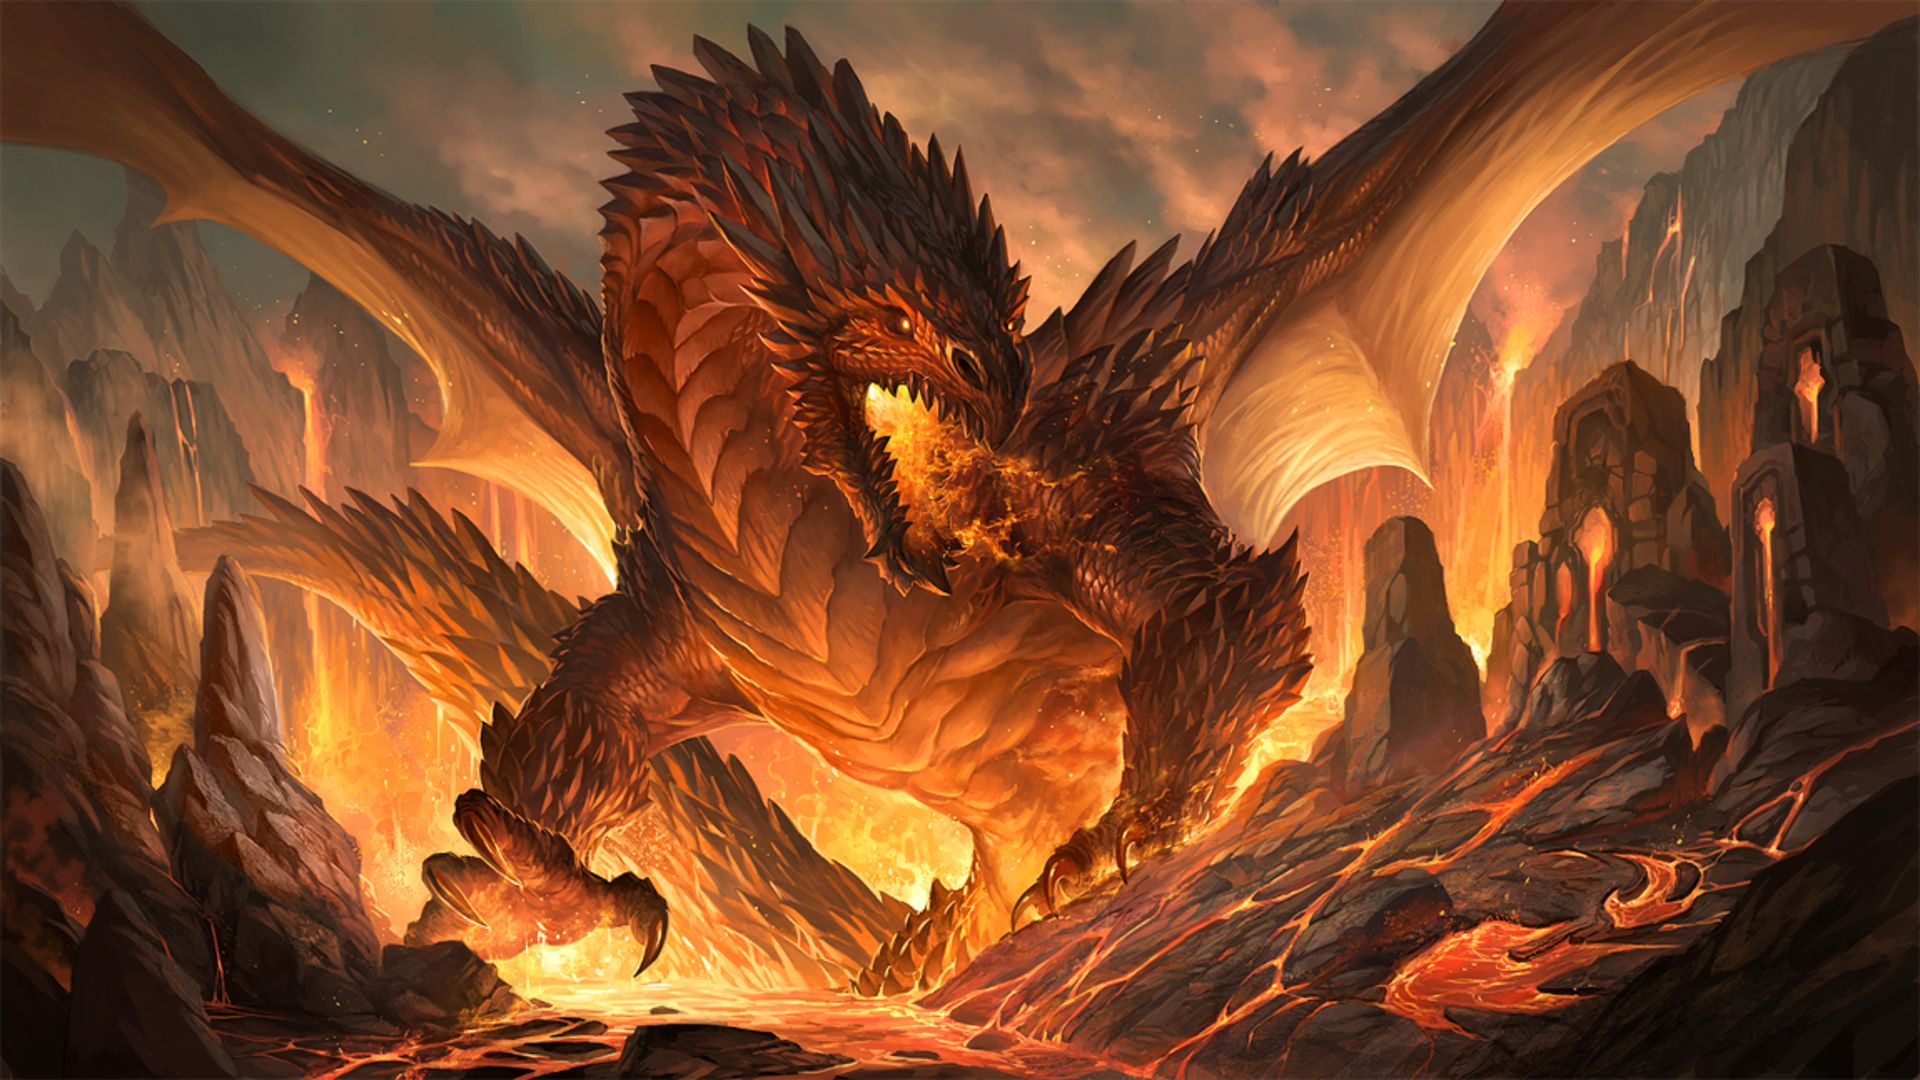 1080P Dragon Wallpapers - Top Free 1080P Dragon Backgrounds